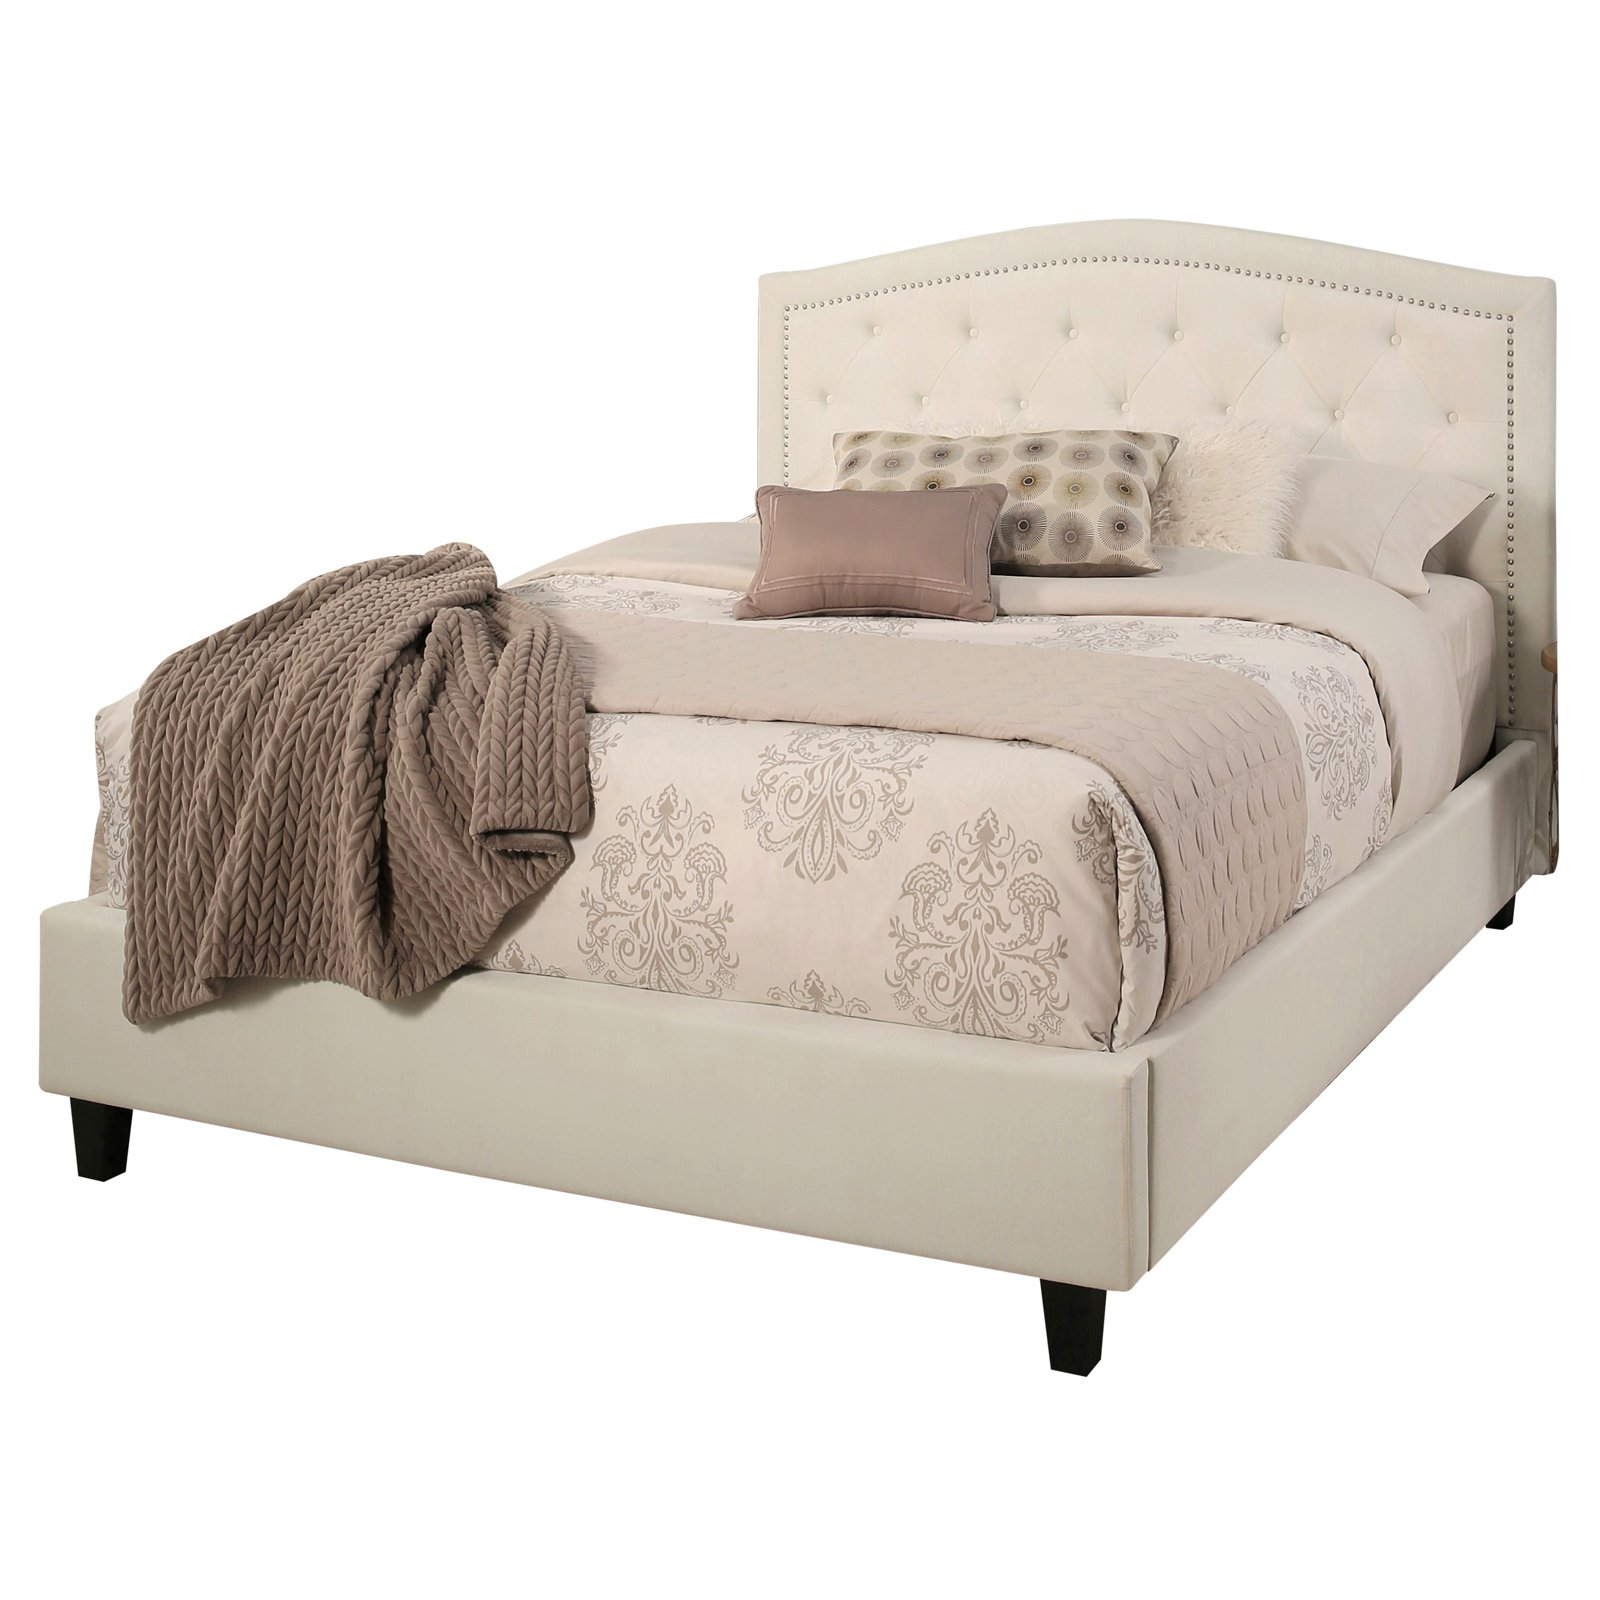 Abbyson Hampton Upholstered Panel Bed